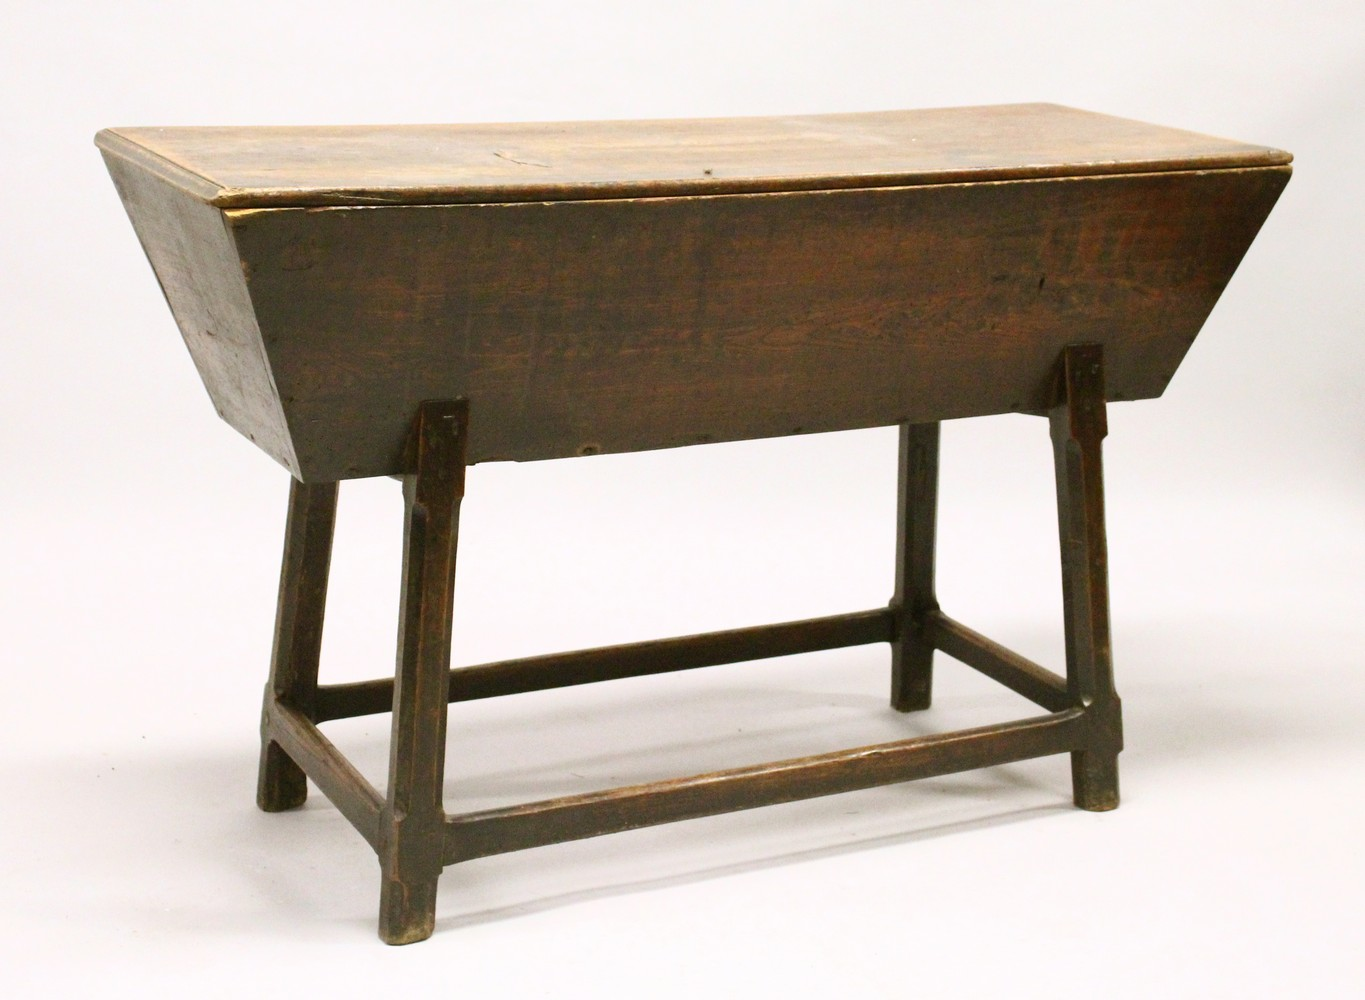 Lot 1039 - AN 18TH CENTURY ELM DOUGH BIN, of typical form. 4ft 1ins long x 1ft 8ins wide x 2ft 7ins high.